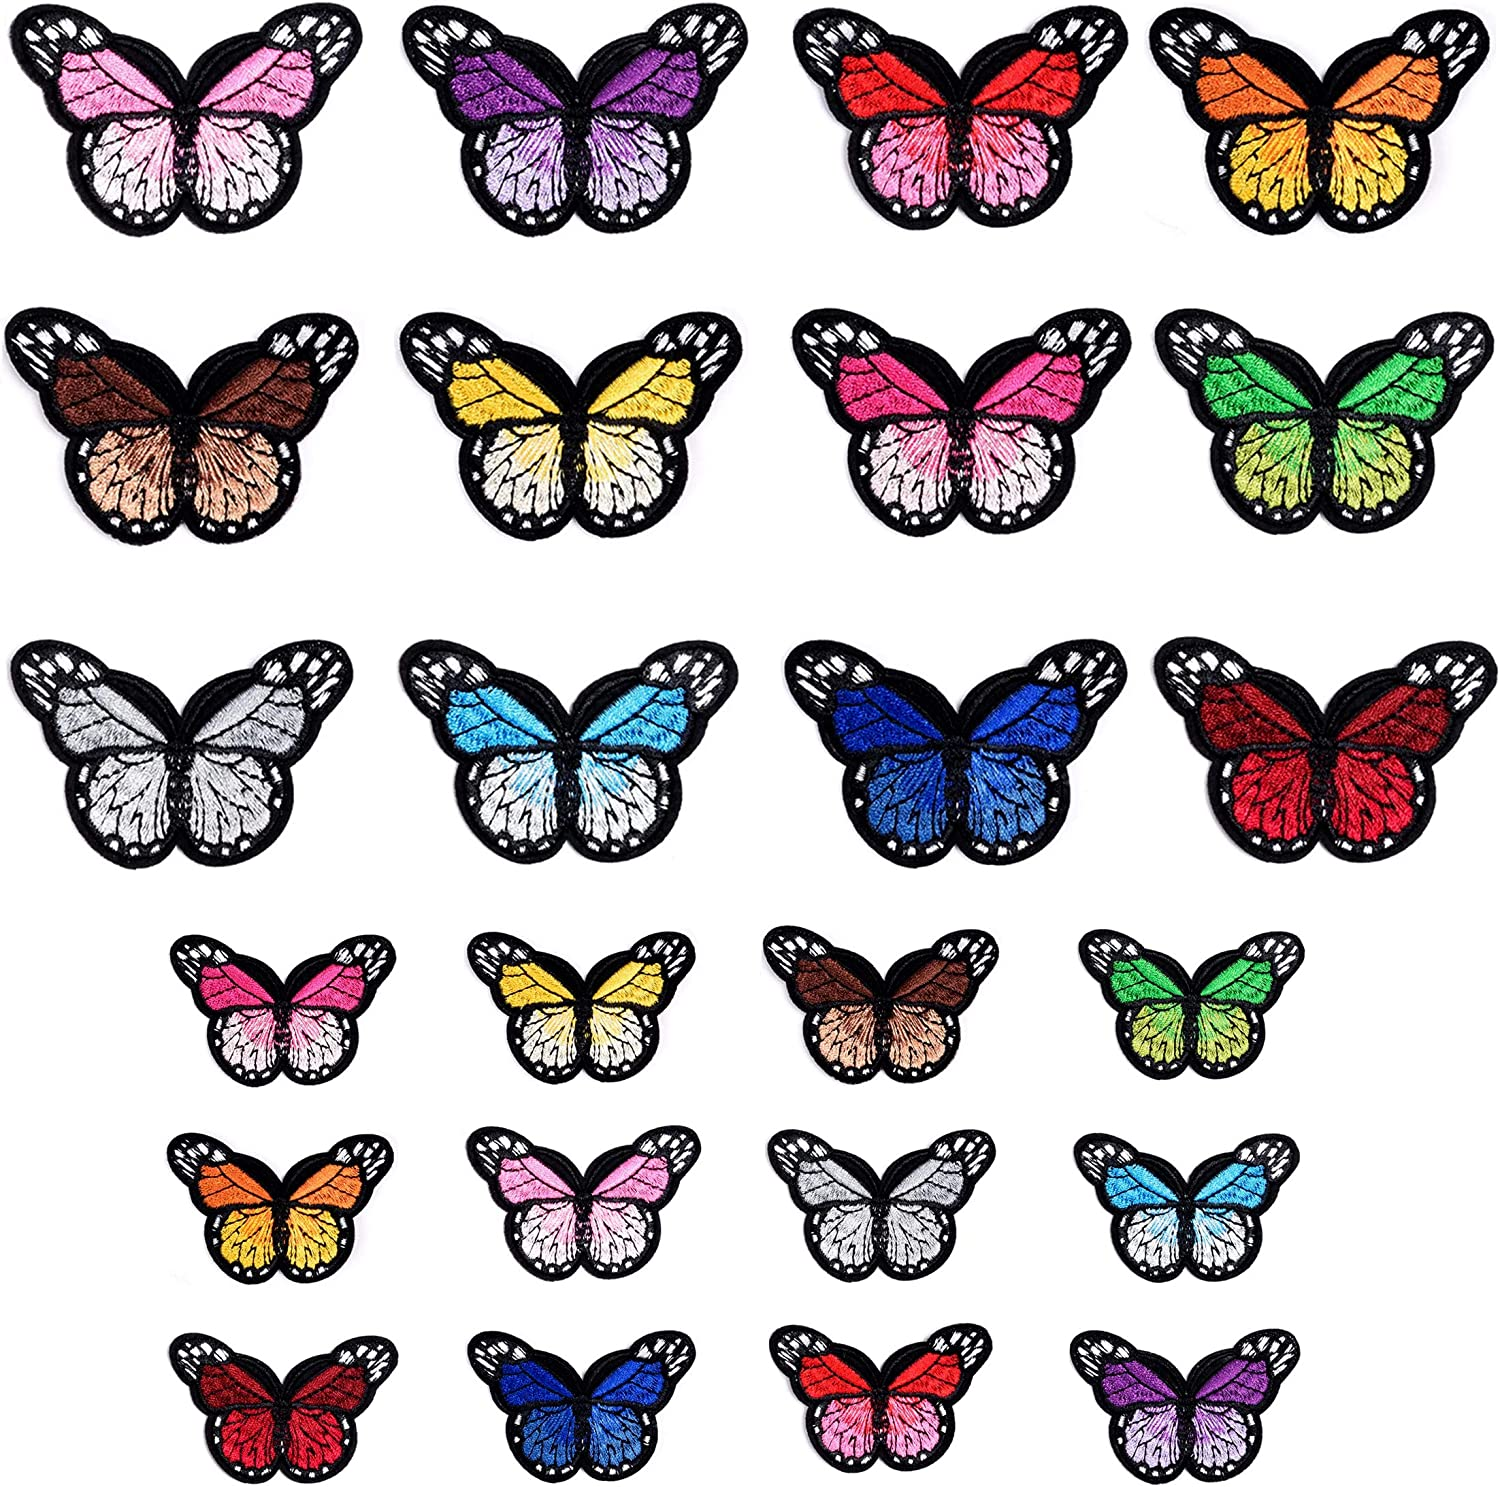 YLY Iron On Patches,Butterfly Patches Embroidered Patches Applique Kit Assorted Styles Decoration Sew On Patches for Clothing,Jackets,Backpacks,Jeans(Butterfly-24Pcs)